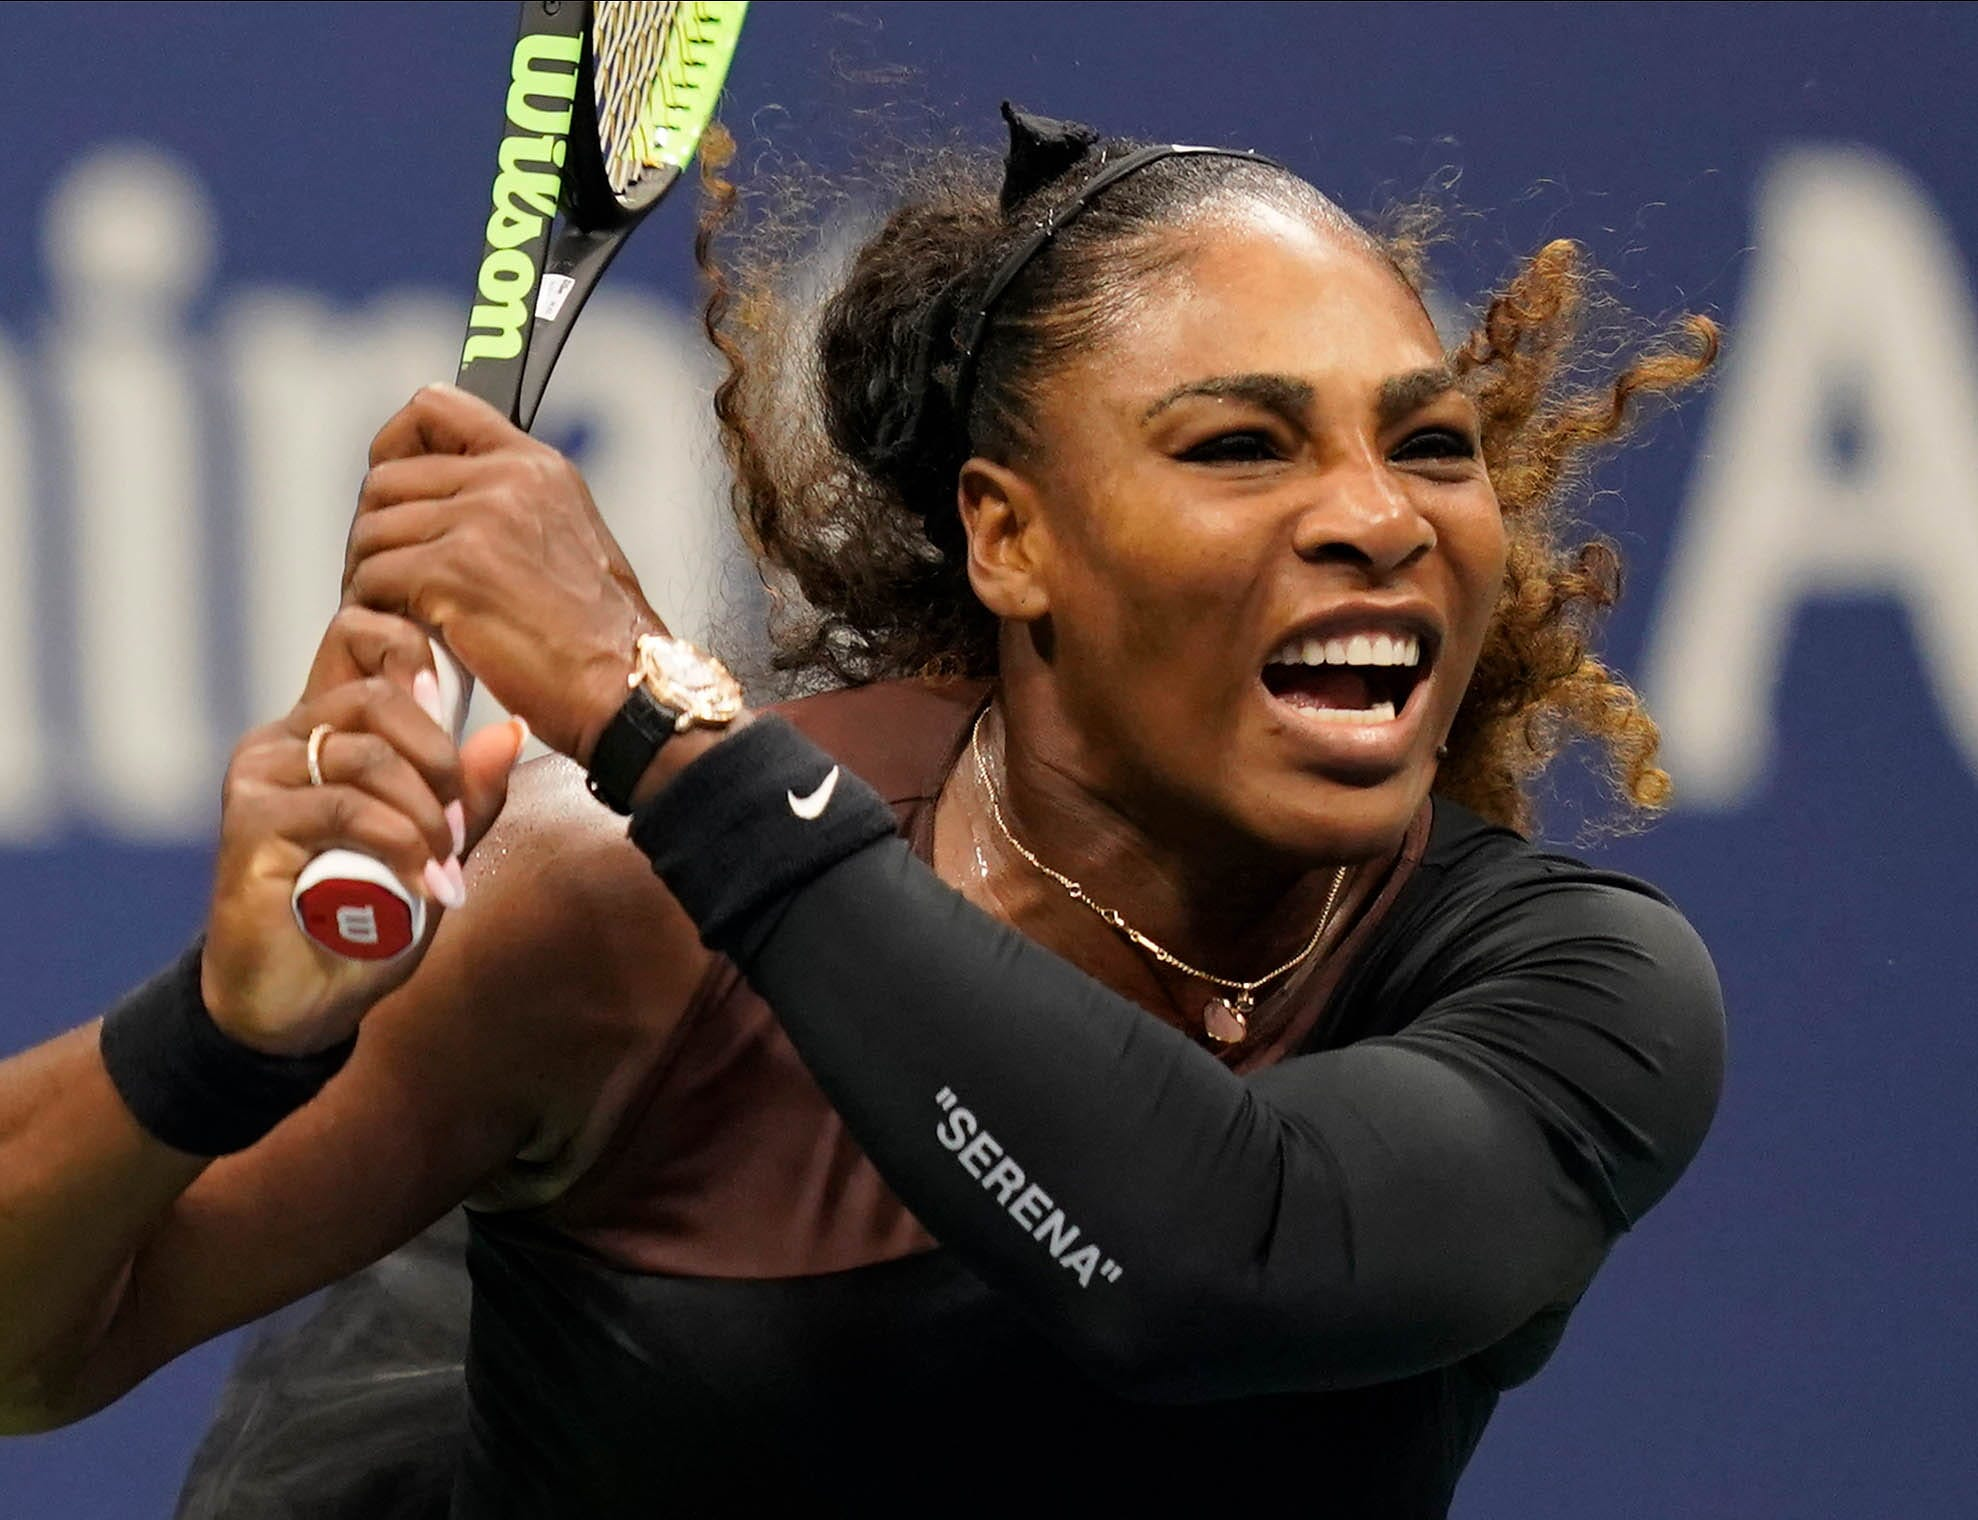 Serena Williams gets game warning after telling chair umpire 'You owe me an apology'